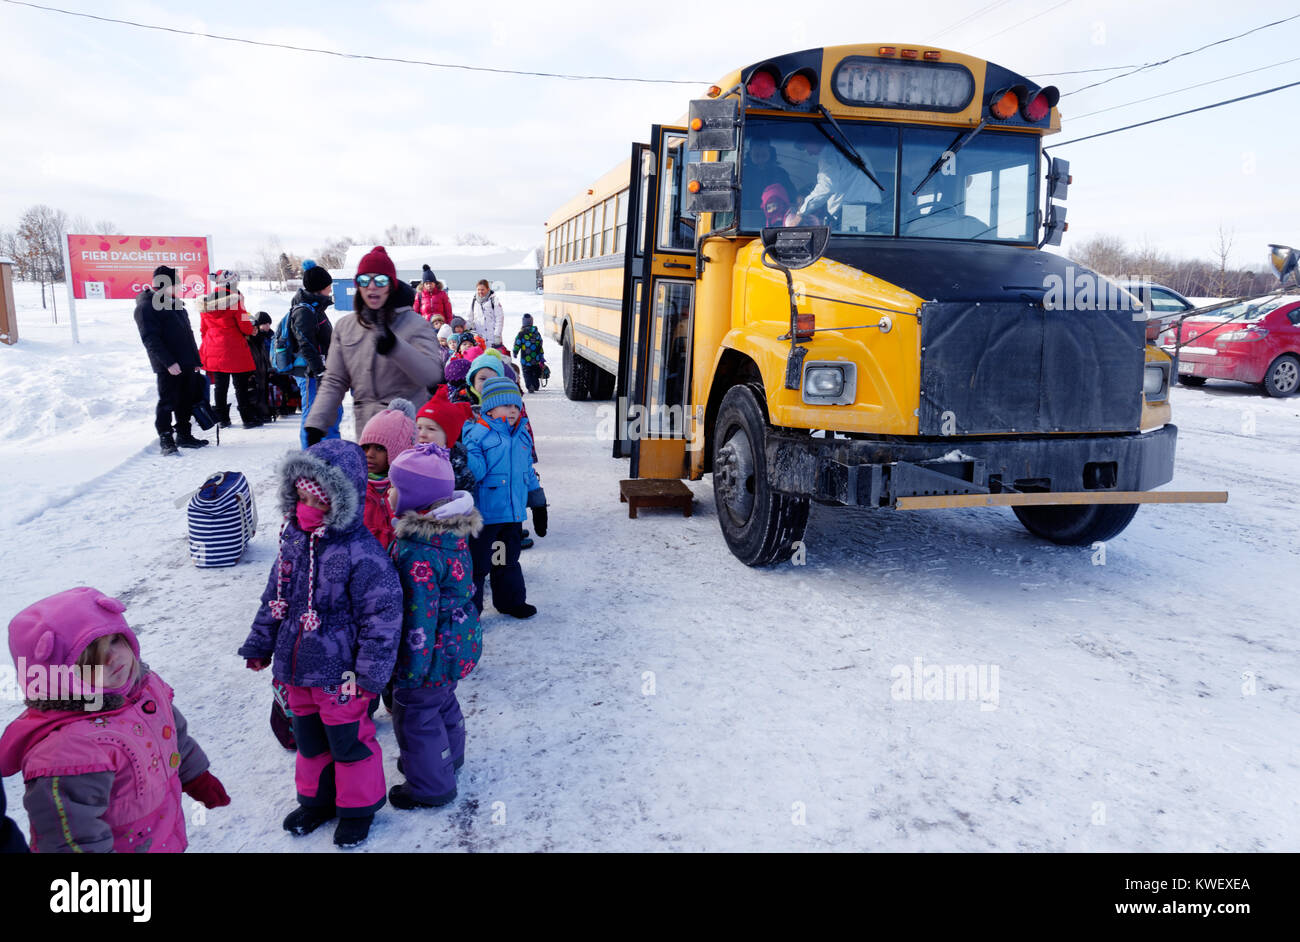 A queue of young school children by a school bus in winter in Quebec - Stock Image